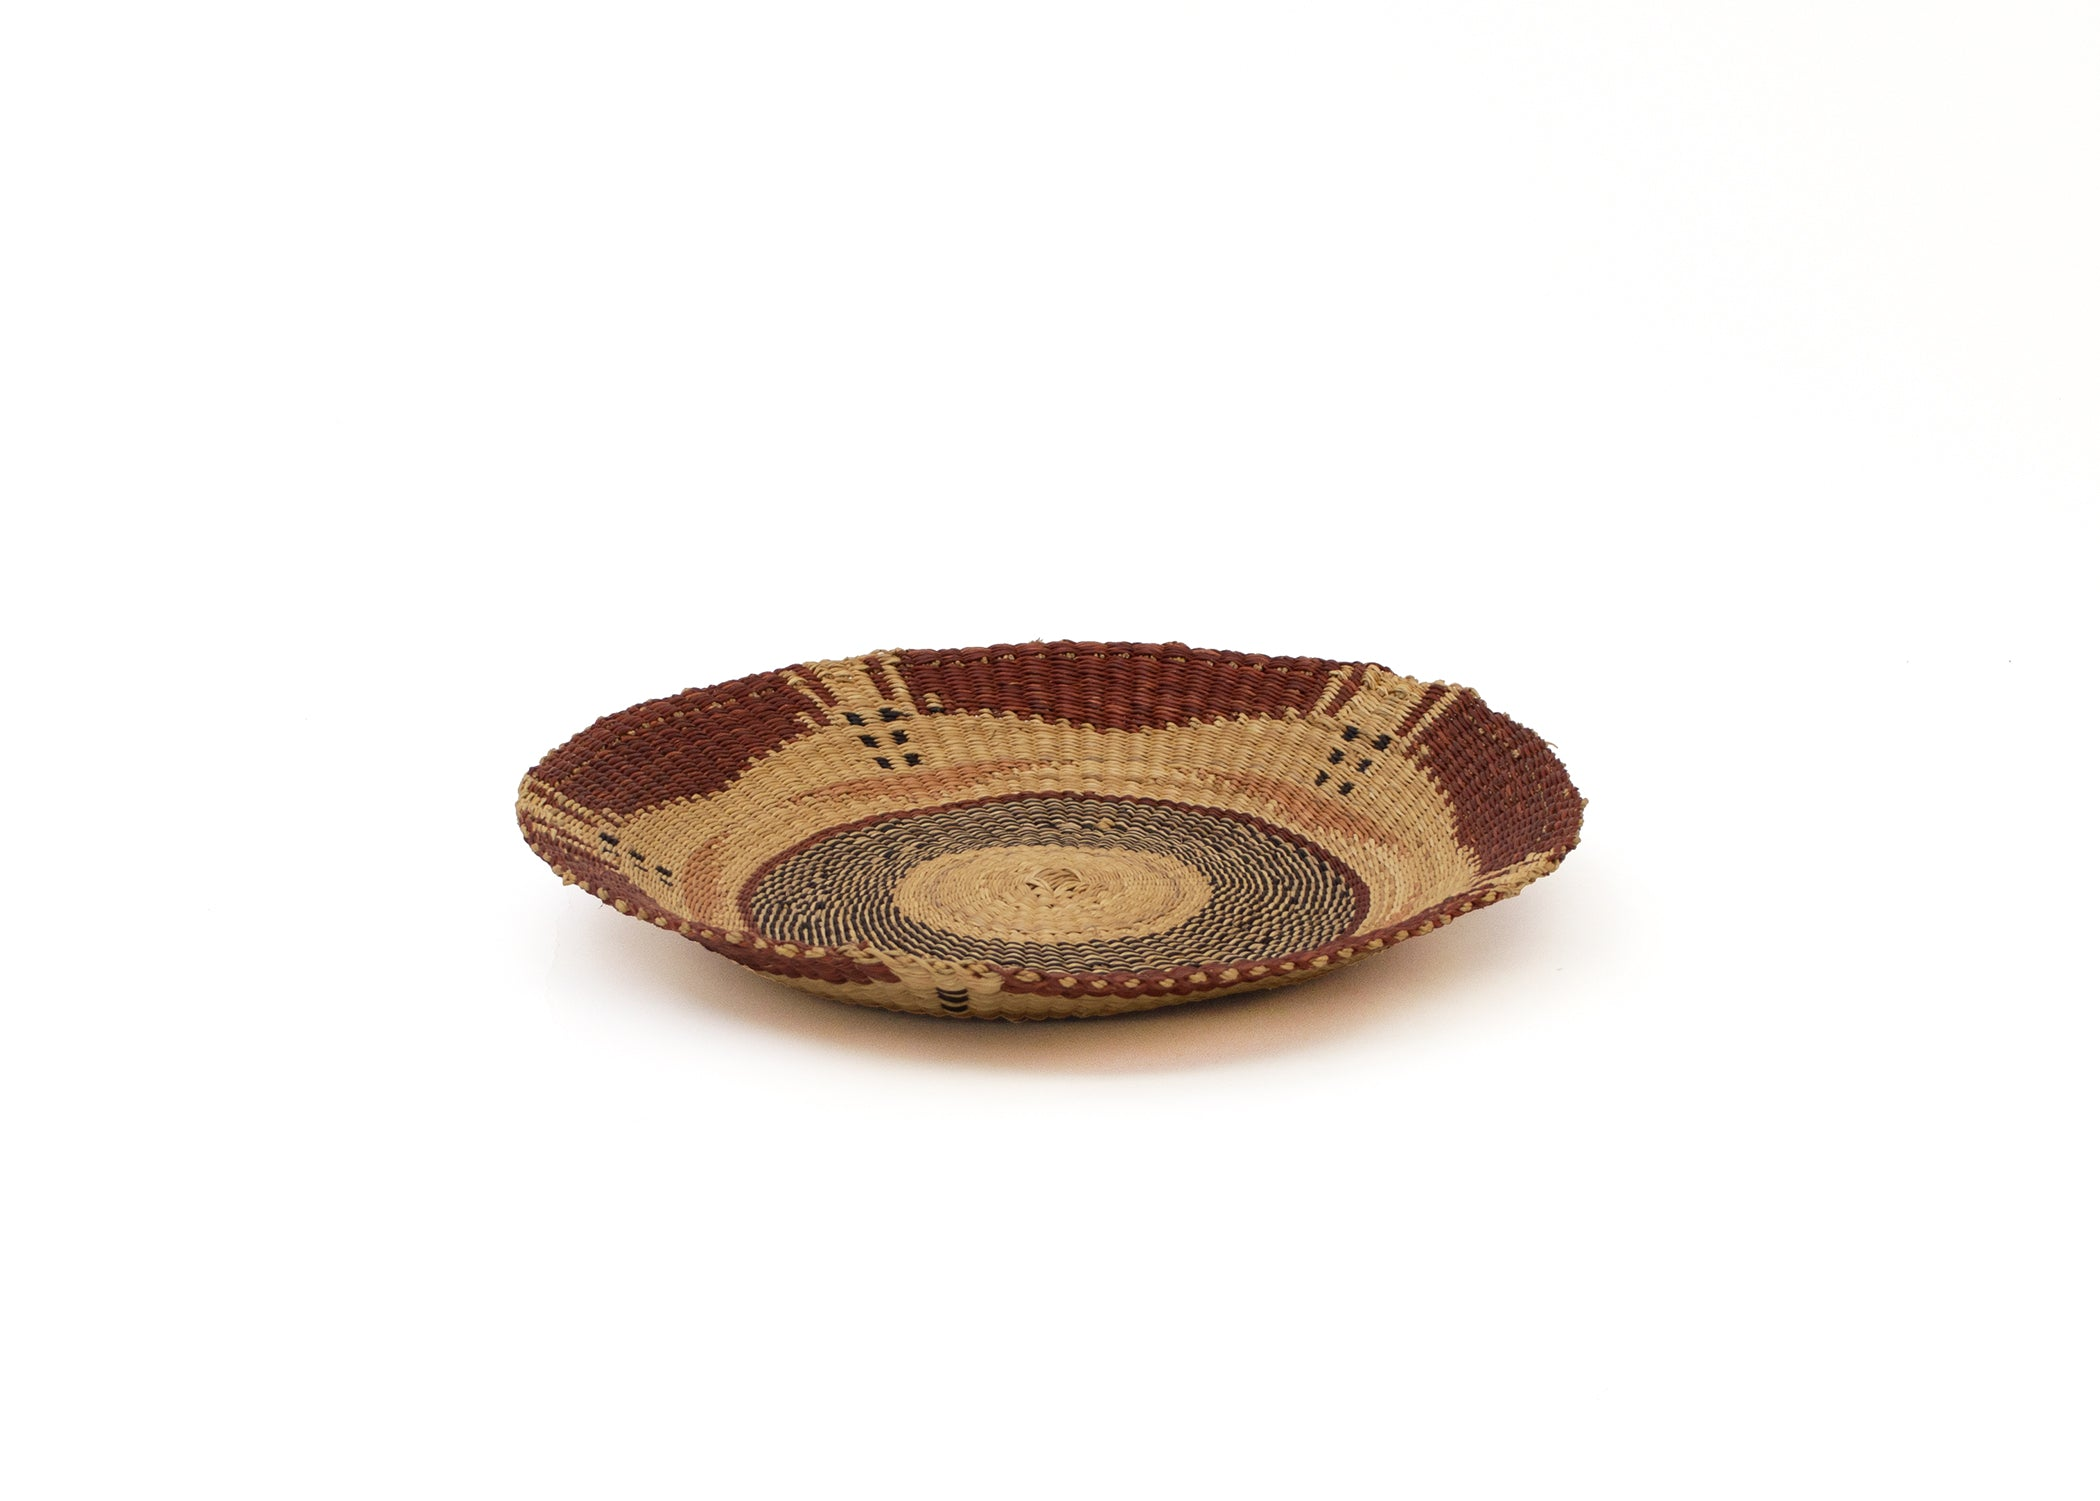 Small Earth Brown Bolga Plate - KAZI - Artisan made high quality home decor and wall art